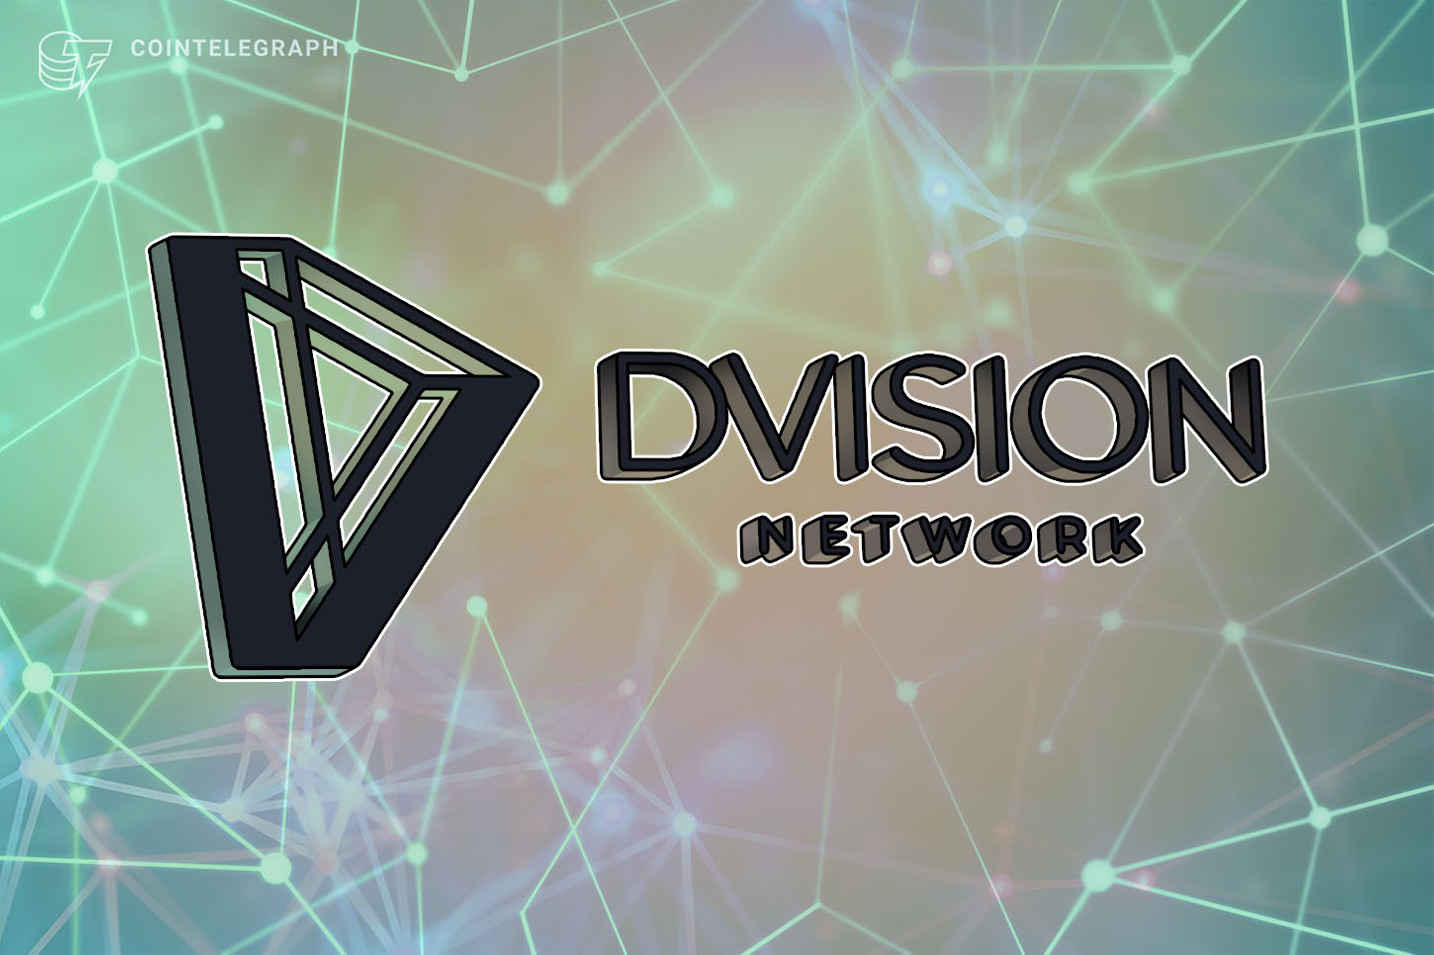 Dvision Network to launch its open beta test on June 30